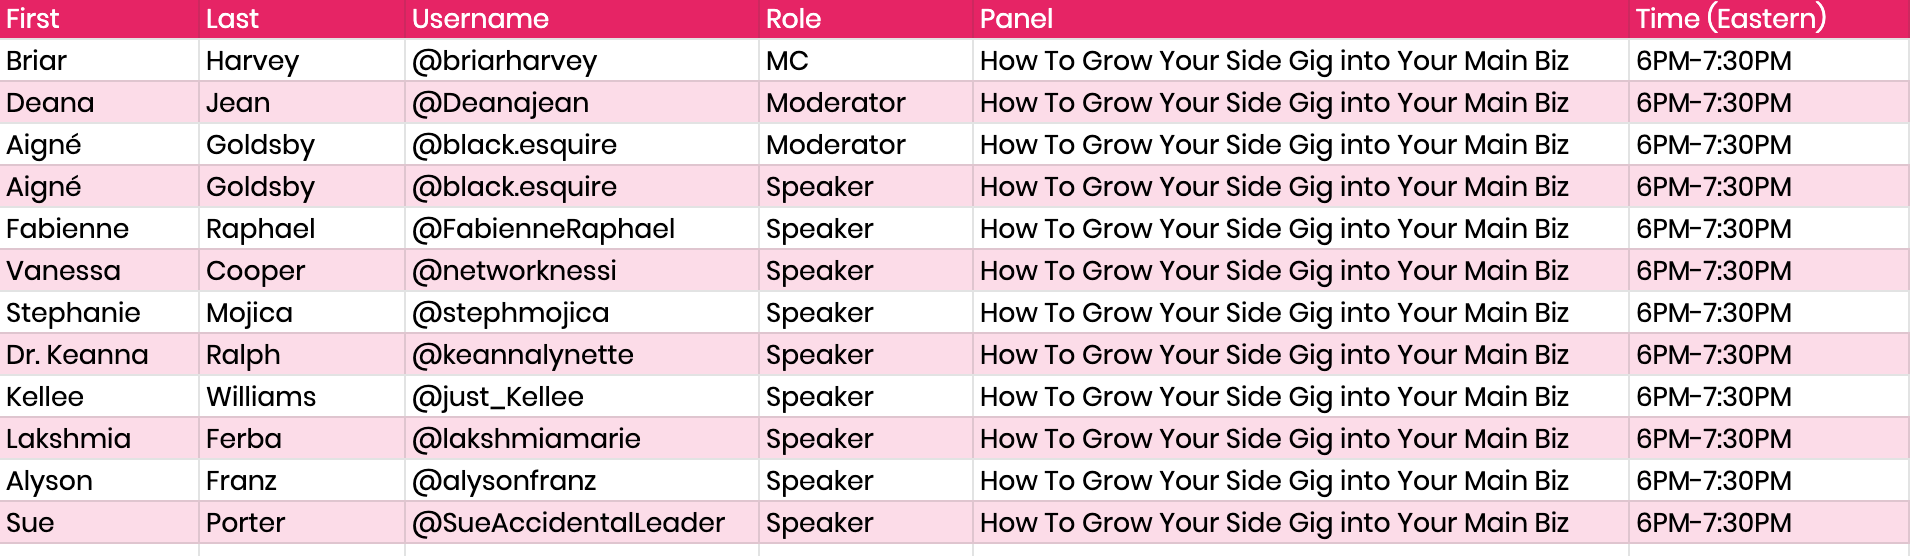 How To Grow Your Side Gig into Your Main Biz